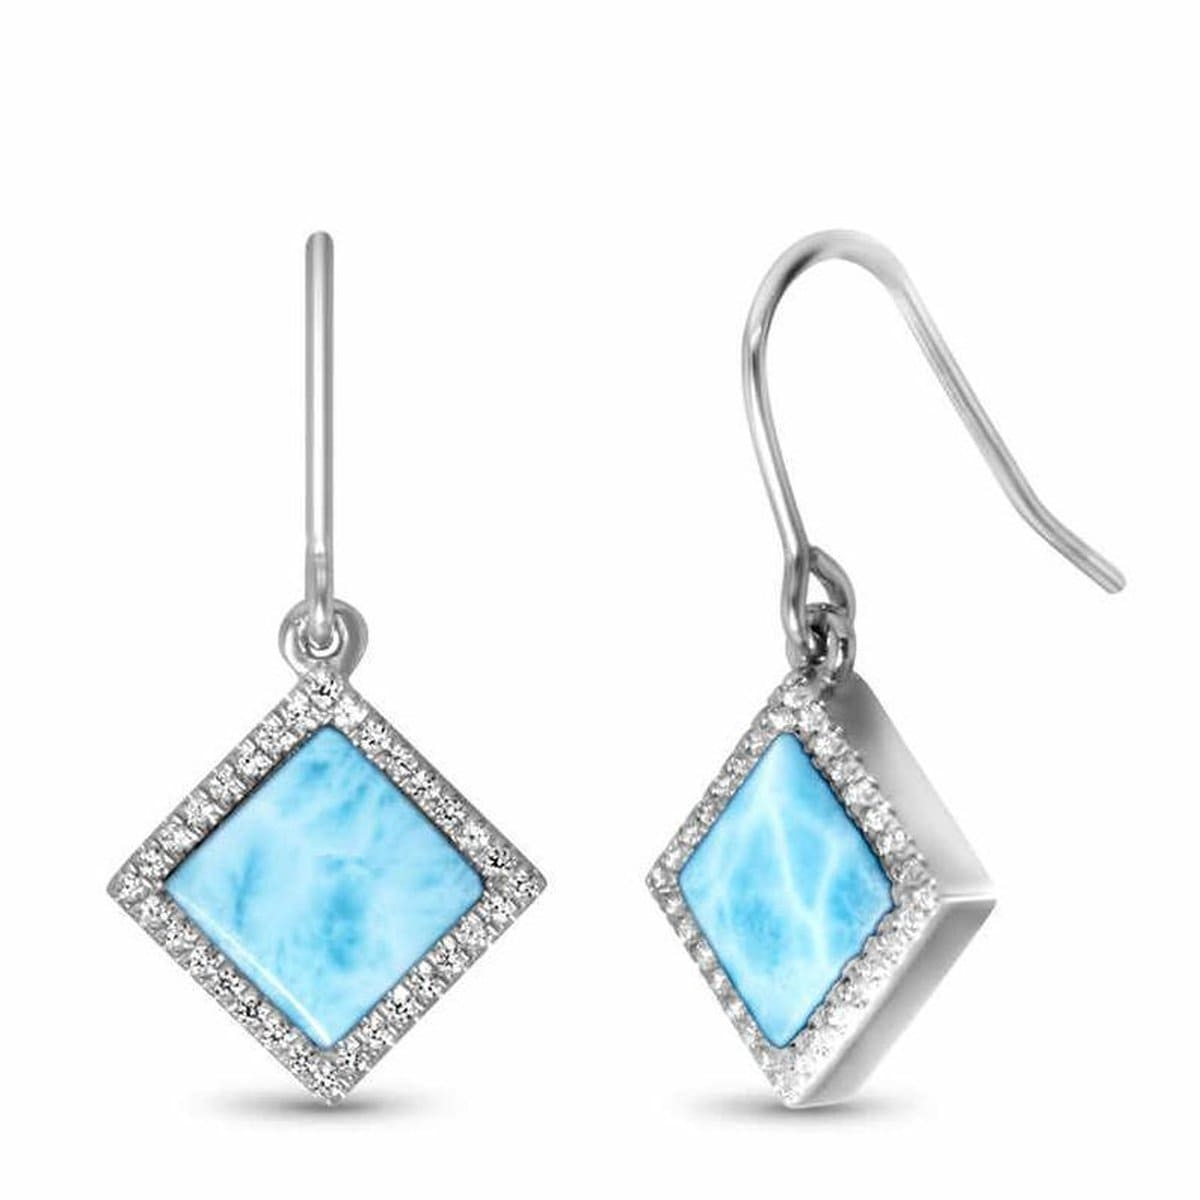 Echo Earrings - Eecho00-00-Marahlago Larimar-Renee Taylor Gallery